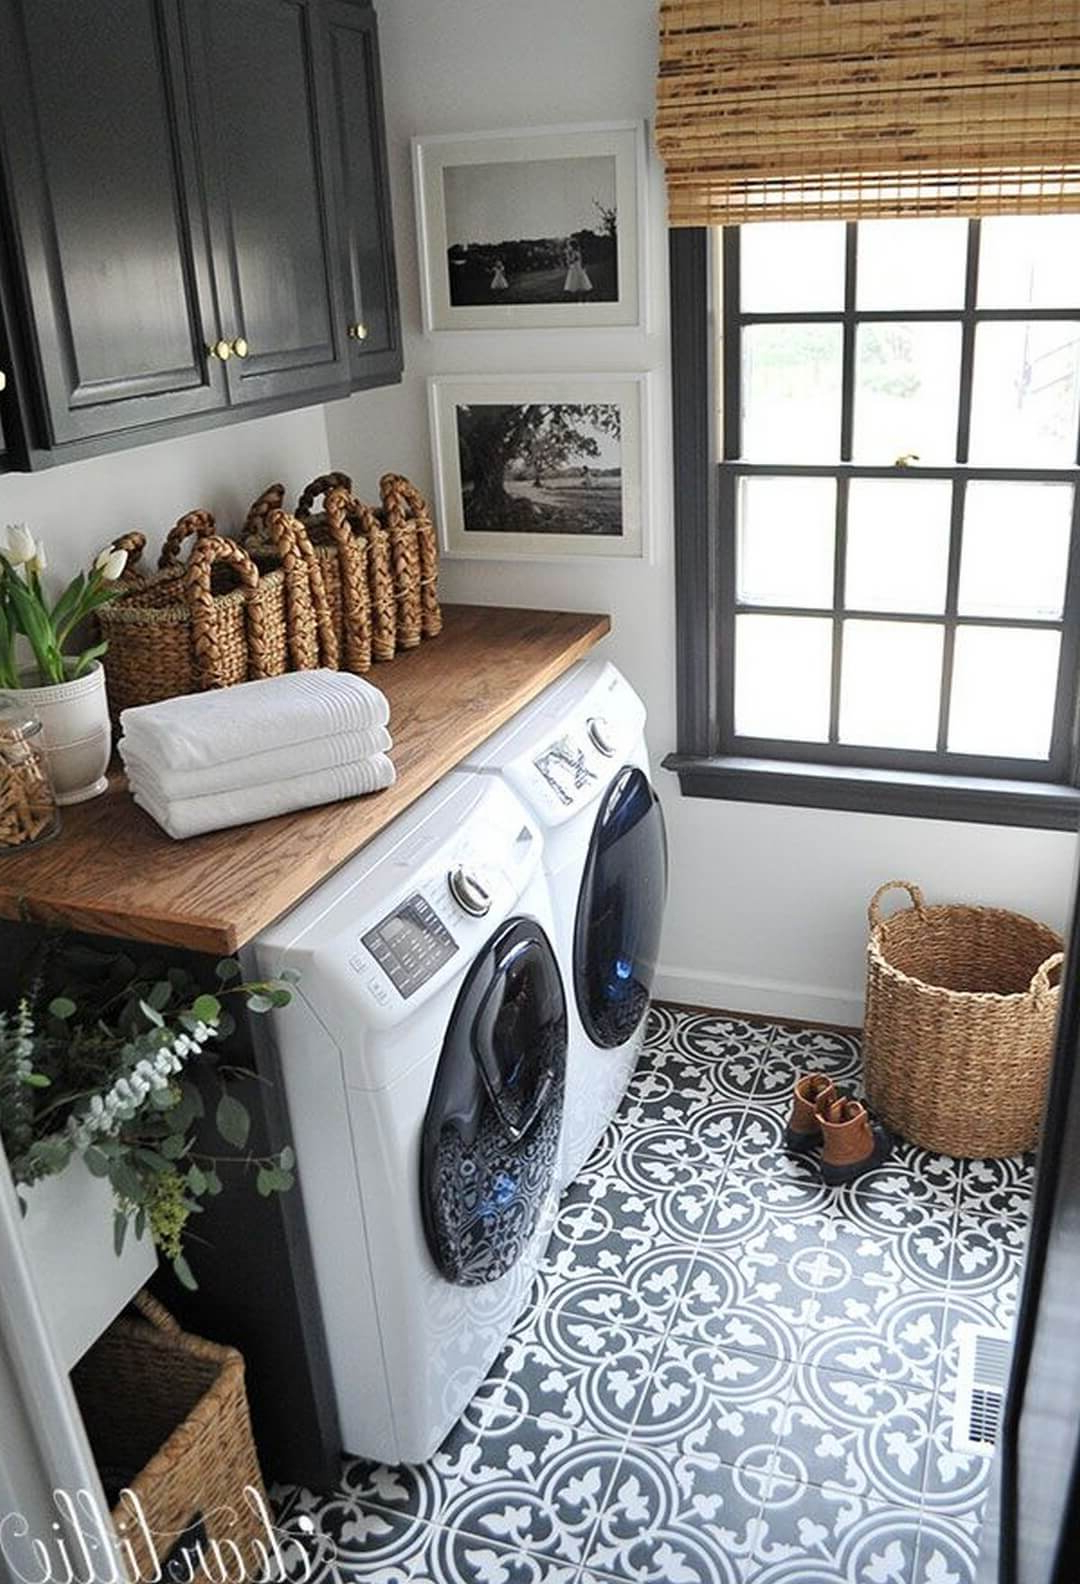 28 Best Small Laundry Room Design Ideas For 2020